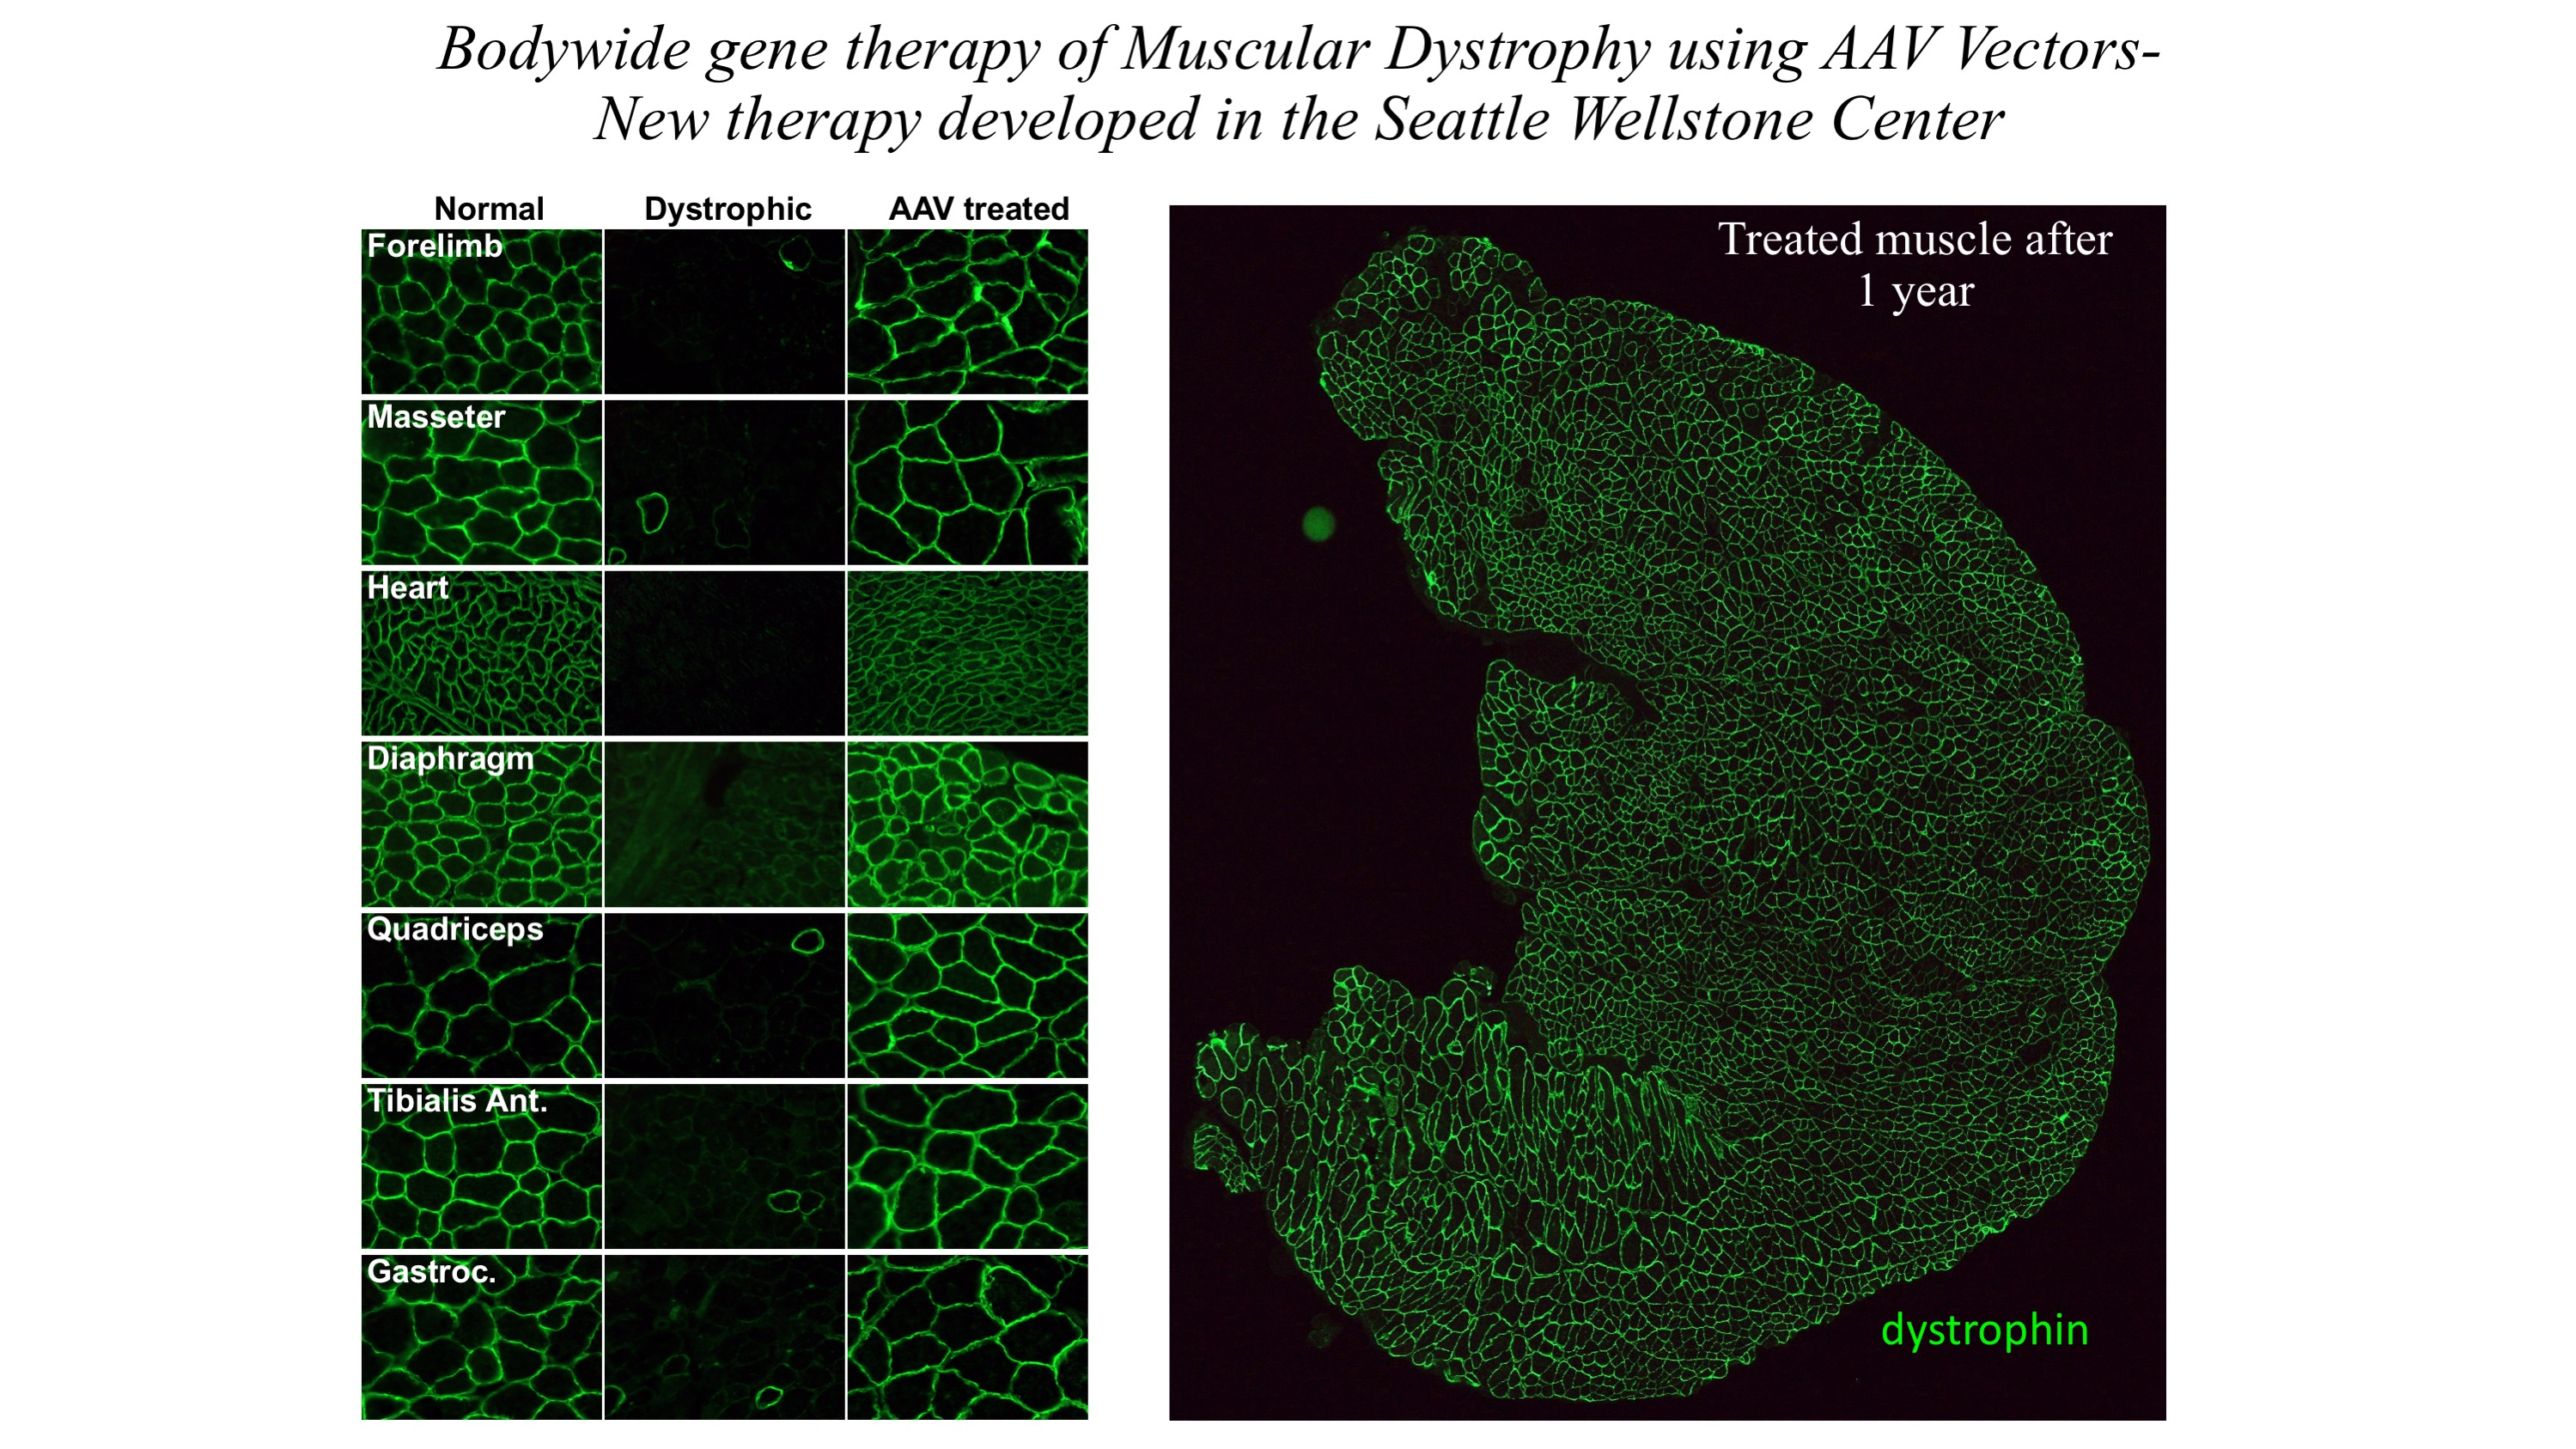 Wellstone - image of bodywide gene thereapy using AAV vectors - new therapy developed in the Seattle Wellstone Center